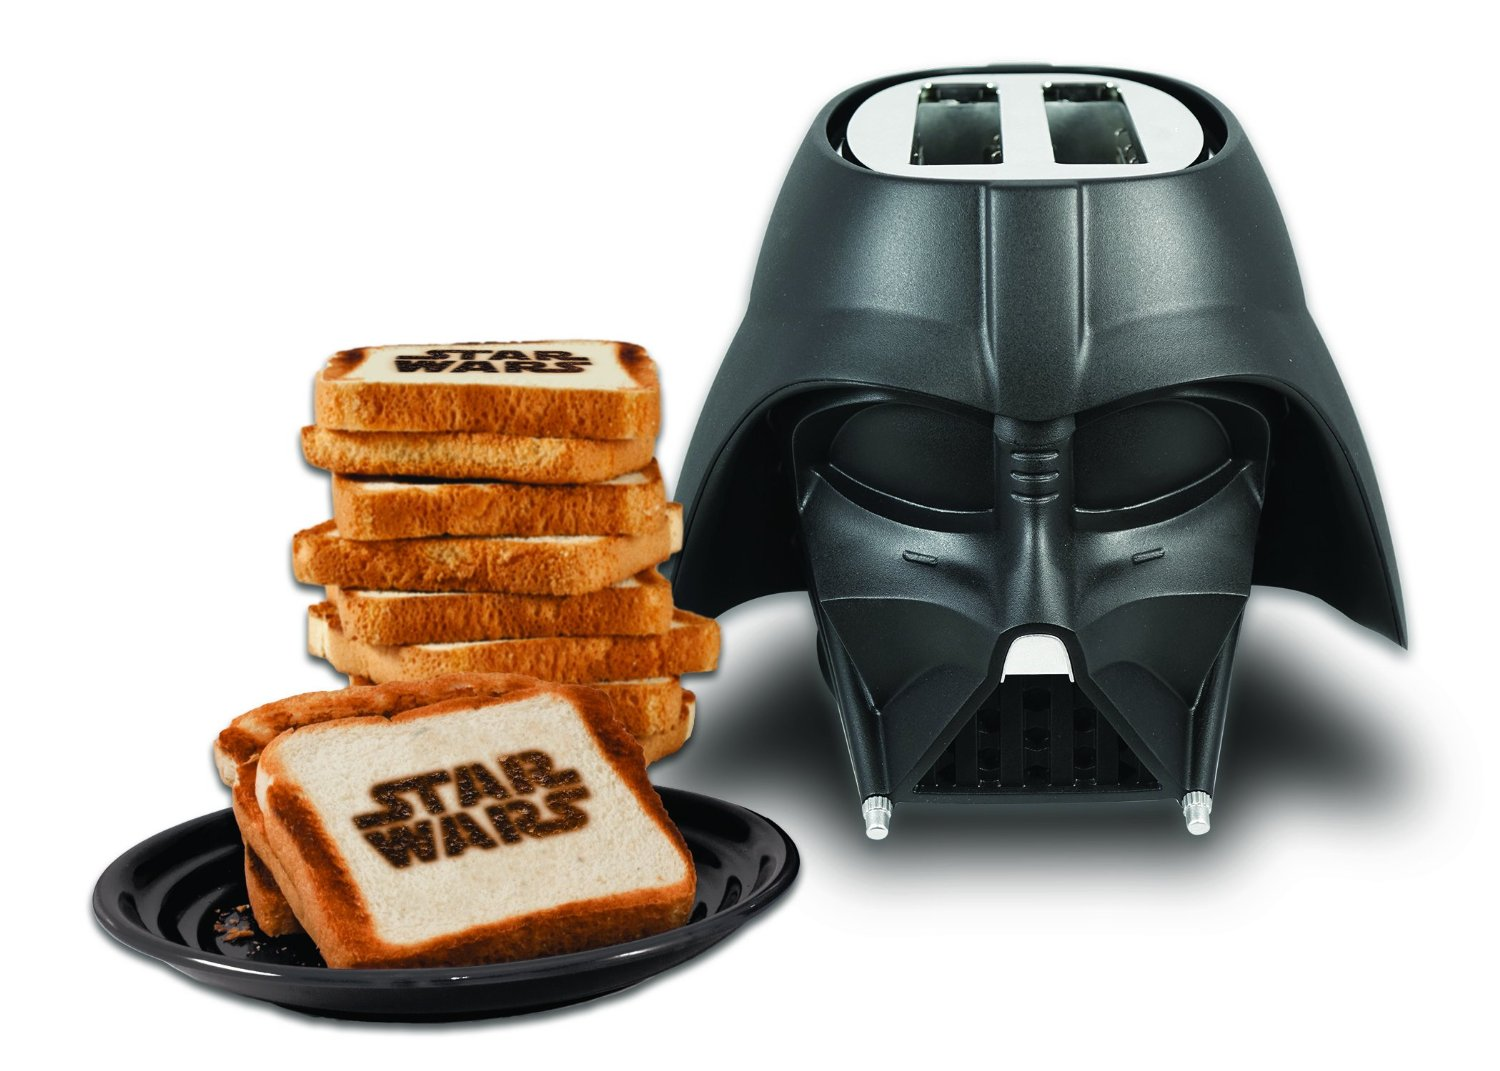 kitchen-tools-darth-vader-toaster